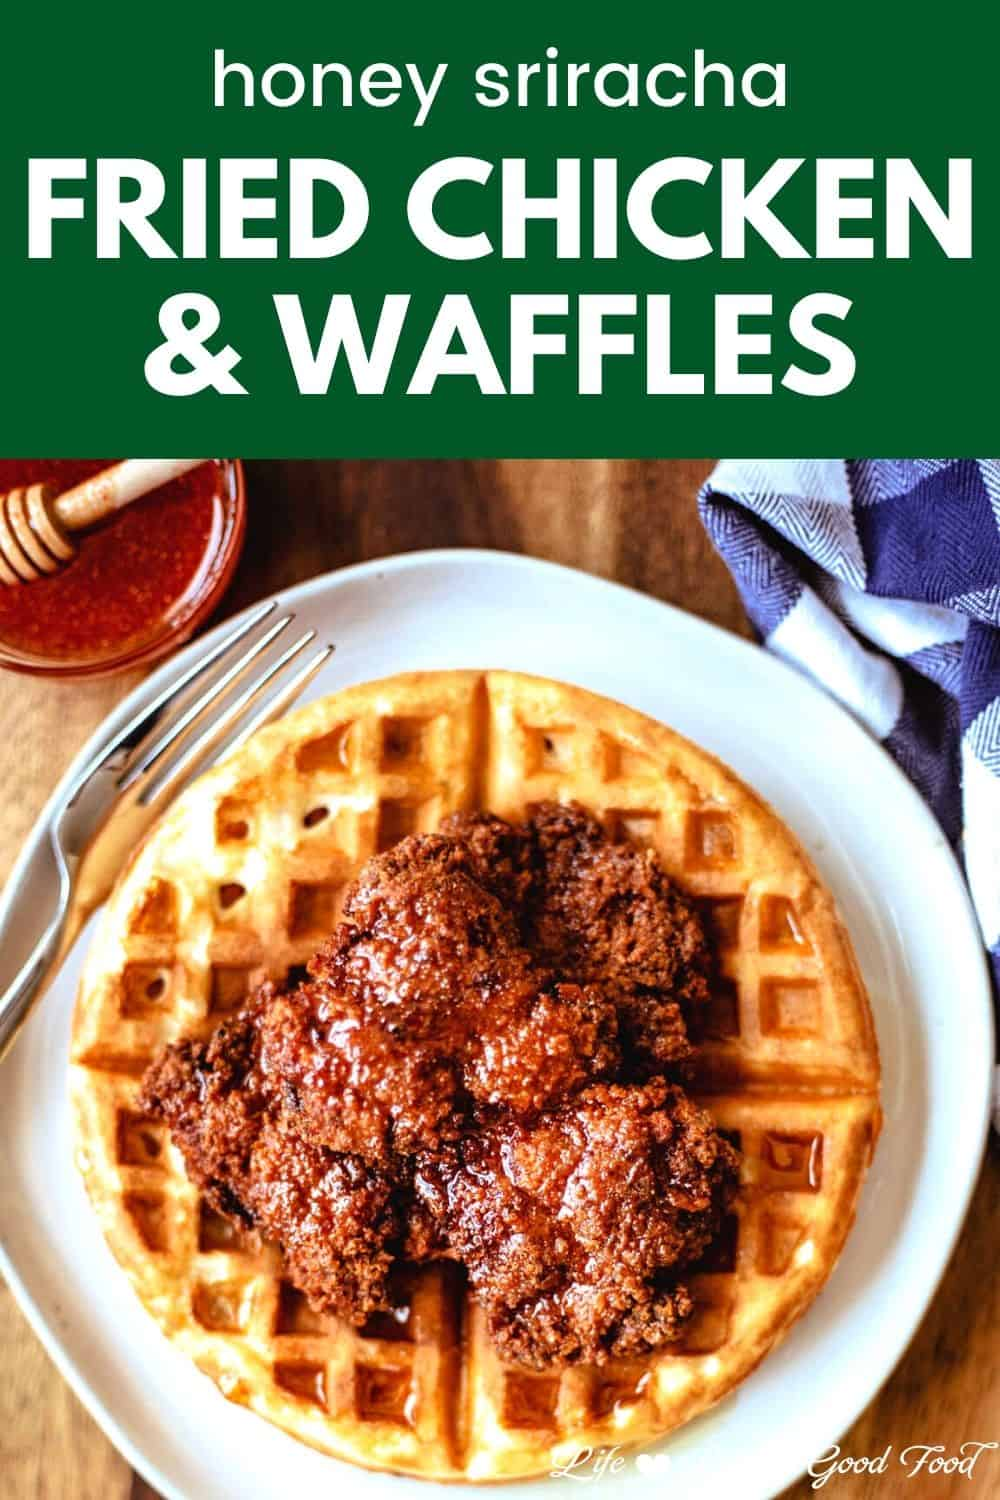 Fried Chicken and Waffles—Southern-fried tender and crunchy chicken thighs served on top of light and crispy waffles and drizzled with warm sriracha honey sauce—is the ultimate comfort food and perfect for a special Sunday brunch or dinner. Made with boneless chicken thighs, this fried chicken is crunchy on the outside, juicy on the inside, and full of delicious flavor. Have mercy, it's just good eating!